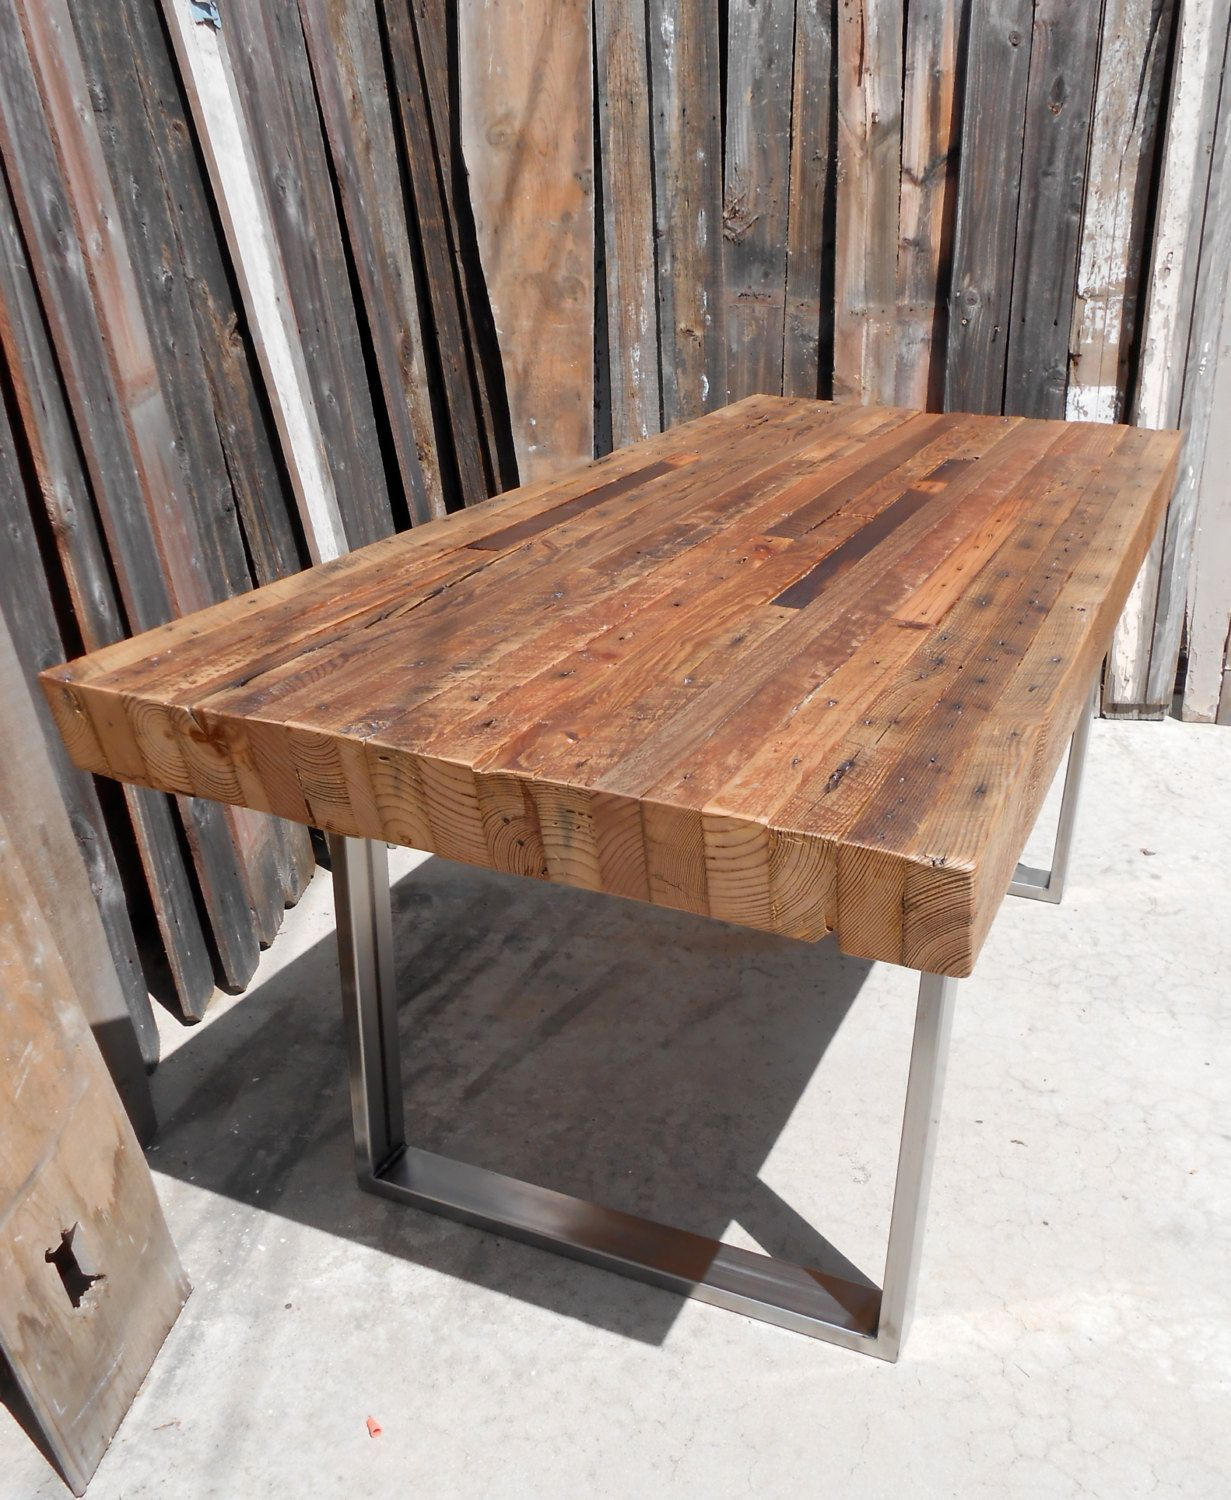 Custom Modern Rustic Table With Steel And Barn Wood. Dun4Me Is The  Marketplace For Custom Made Items Built To Your Exact Specifications By  Talenteu2026